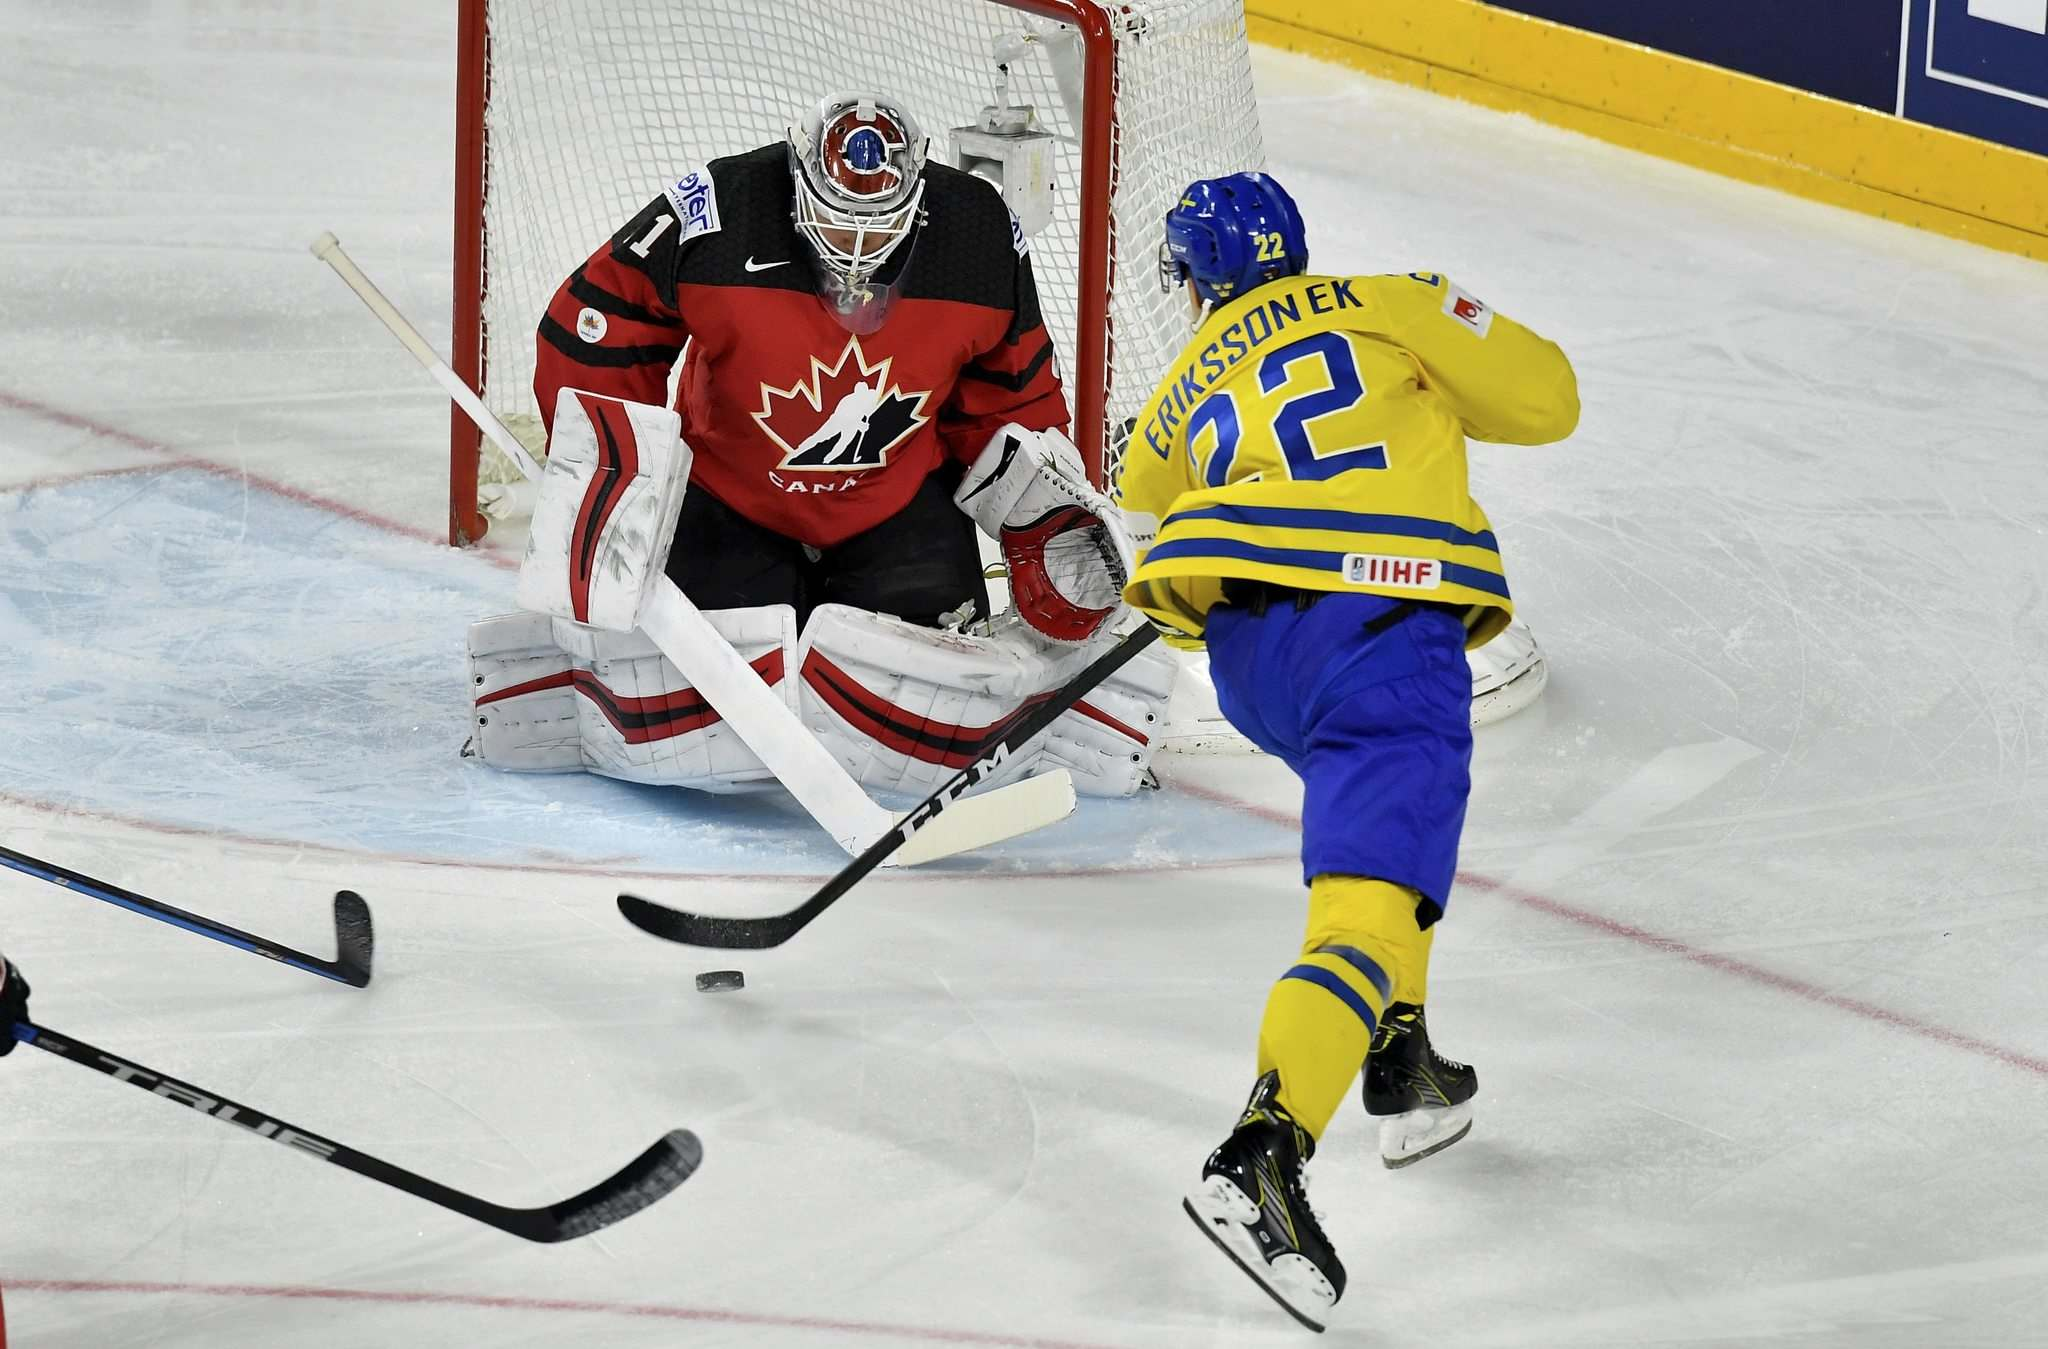 Martin Meissner / The Associated Press</p><p>Canada's Calvin Pickard blocks a shot by Sweden's Joel Eriksson Ek, right, at the Ice Hockey World Championships final match between Canada and Sweden in the LANXESS arena in Cologne, Germany, Sunday, May 21, 2017.</p>